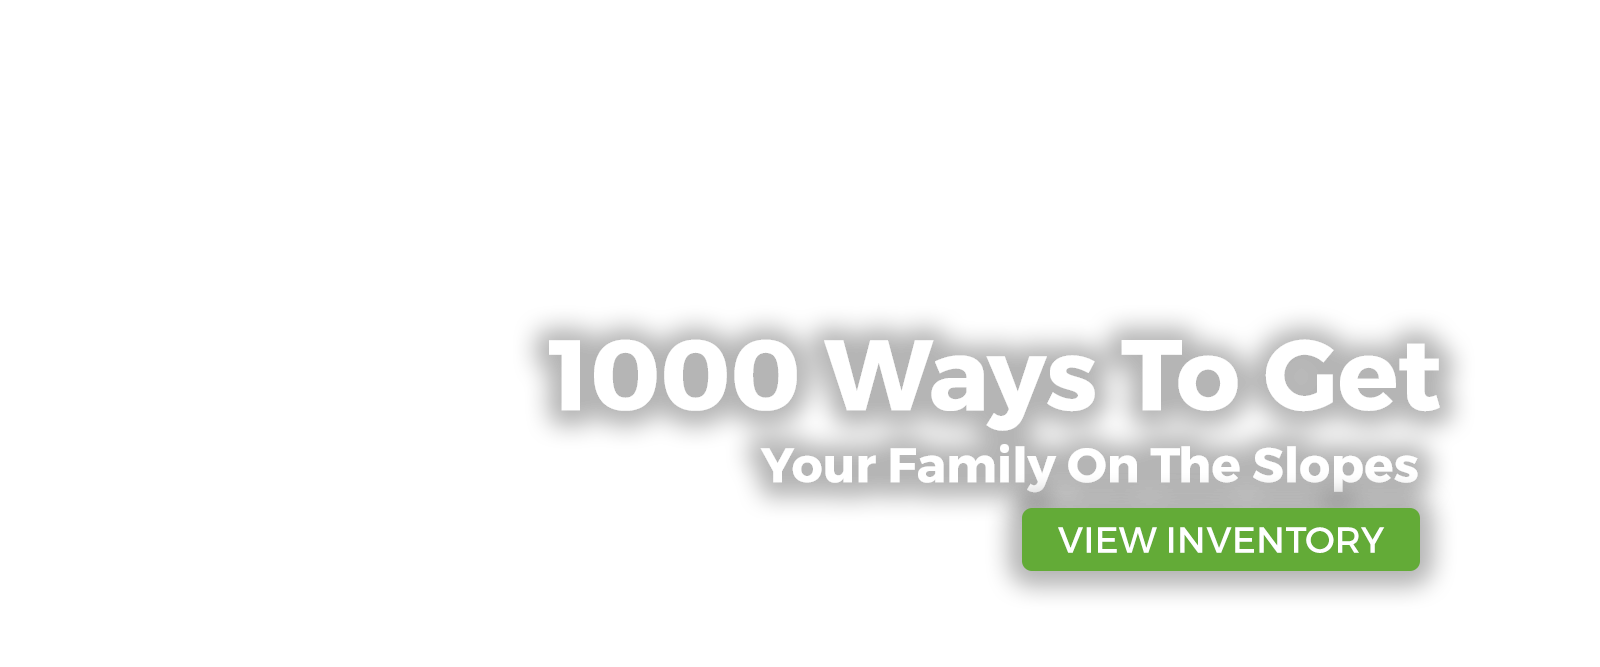 1000 ways to get your family on the slopes at Larry H. Miller Used Car Supermarkets